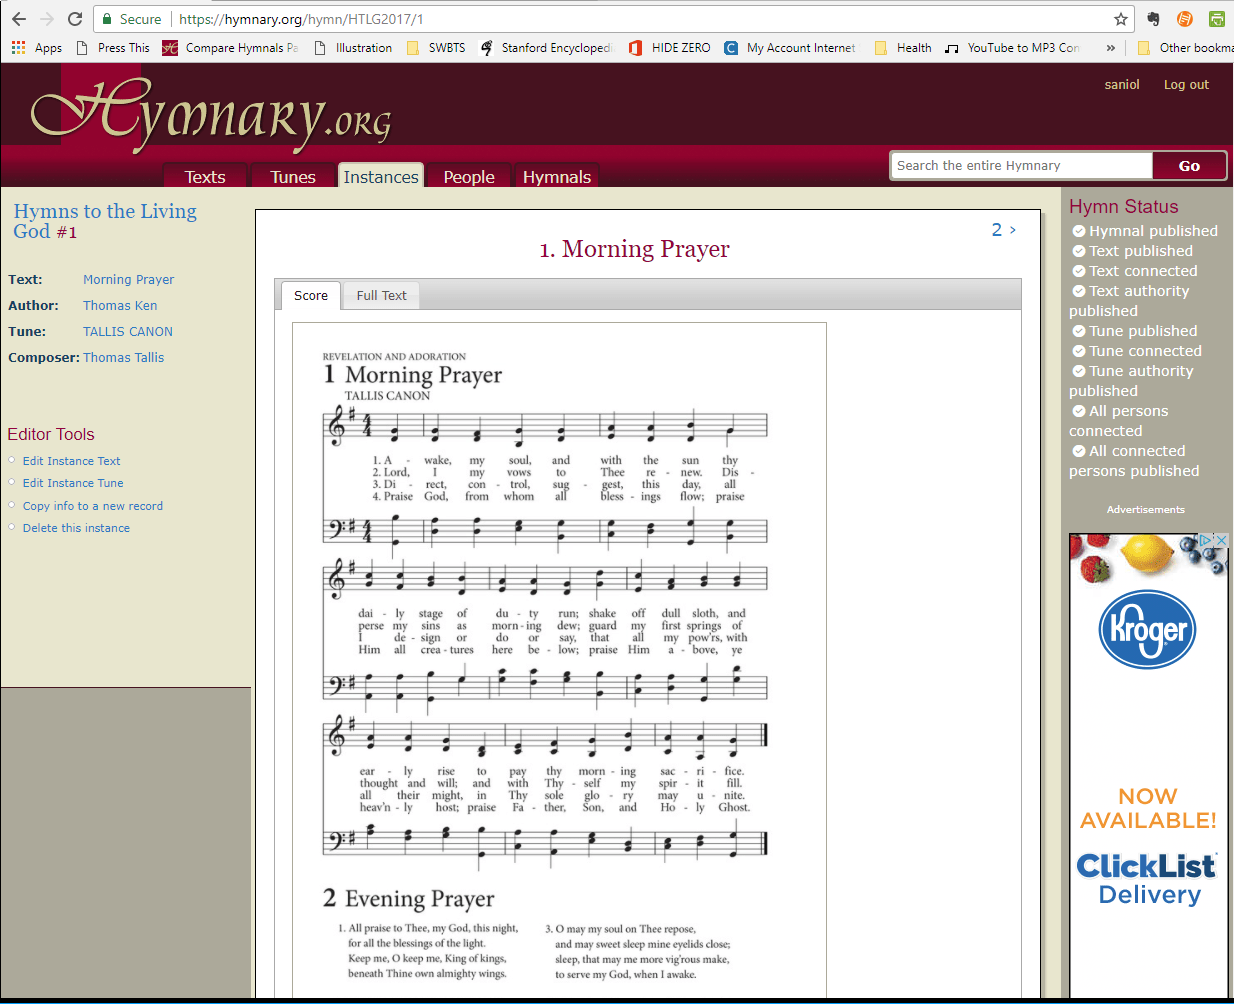 Images of each page of Hymns to the Living God are now available on Hymnary.org